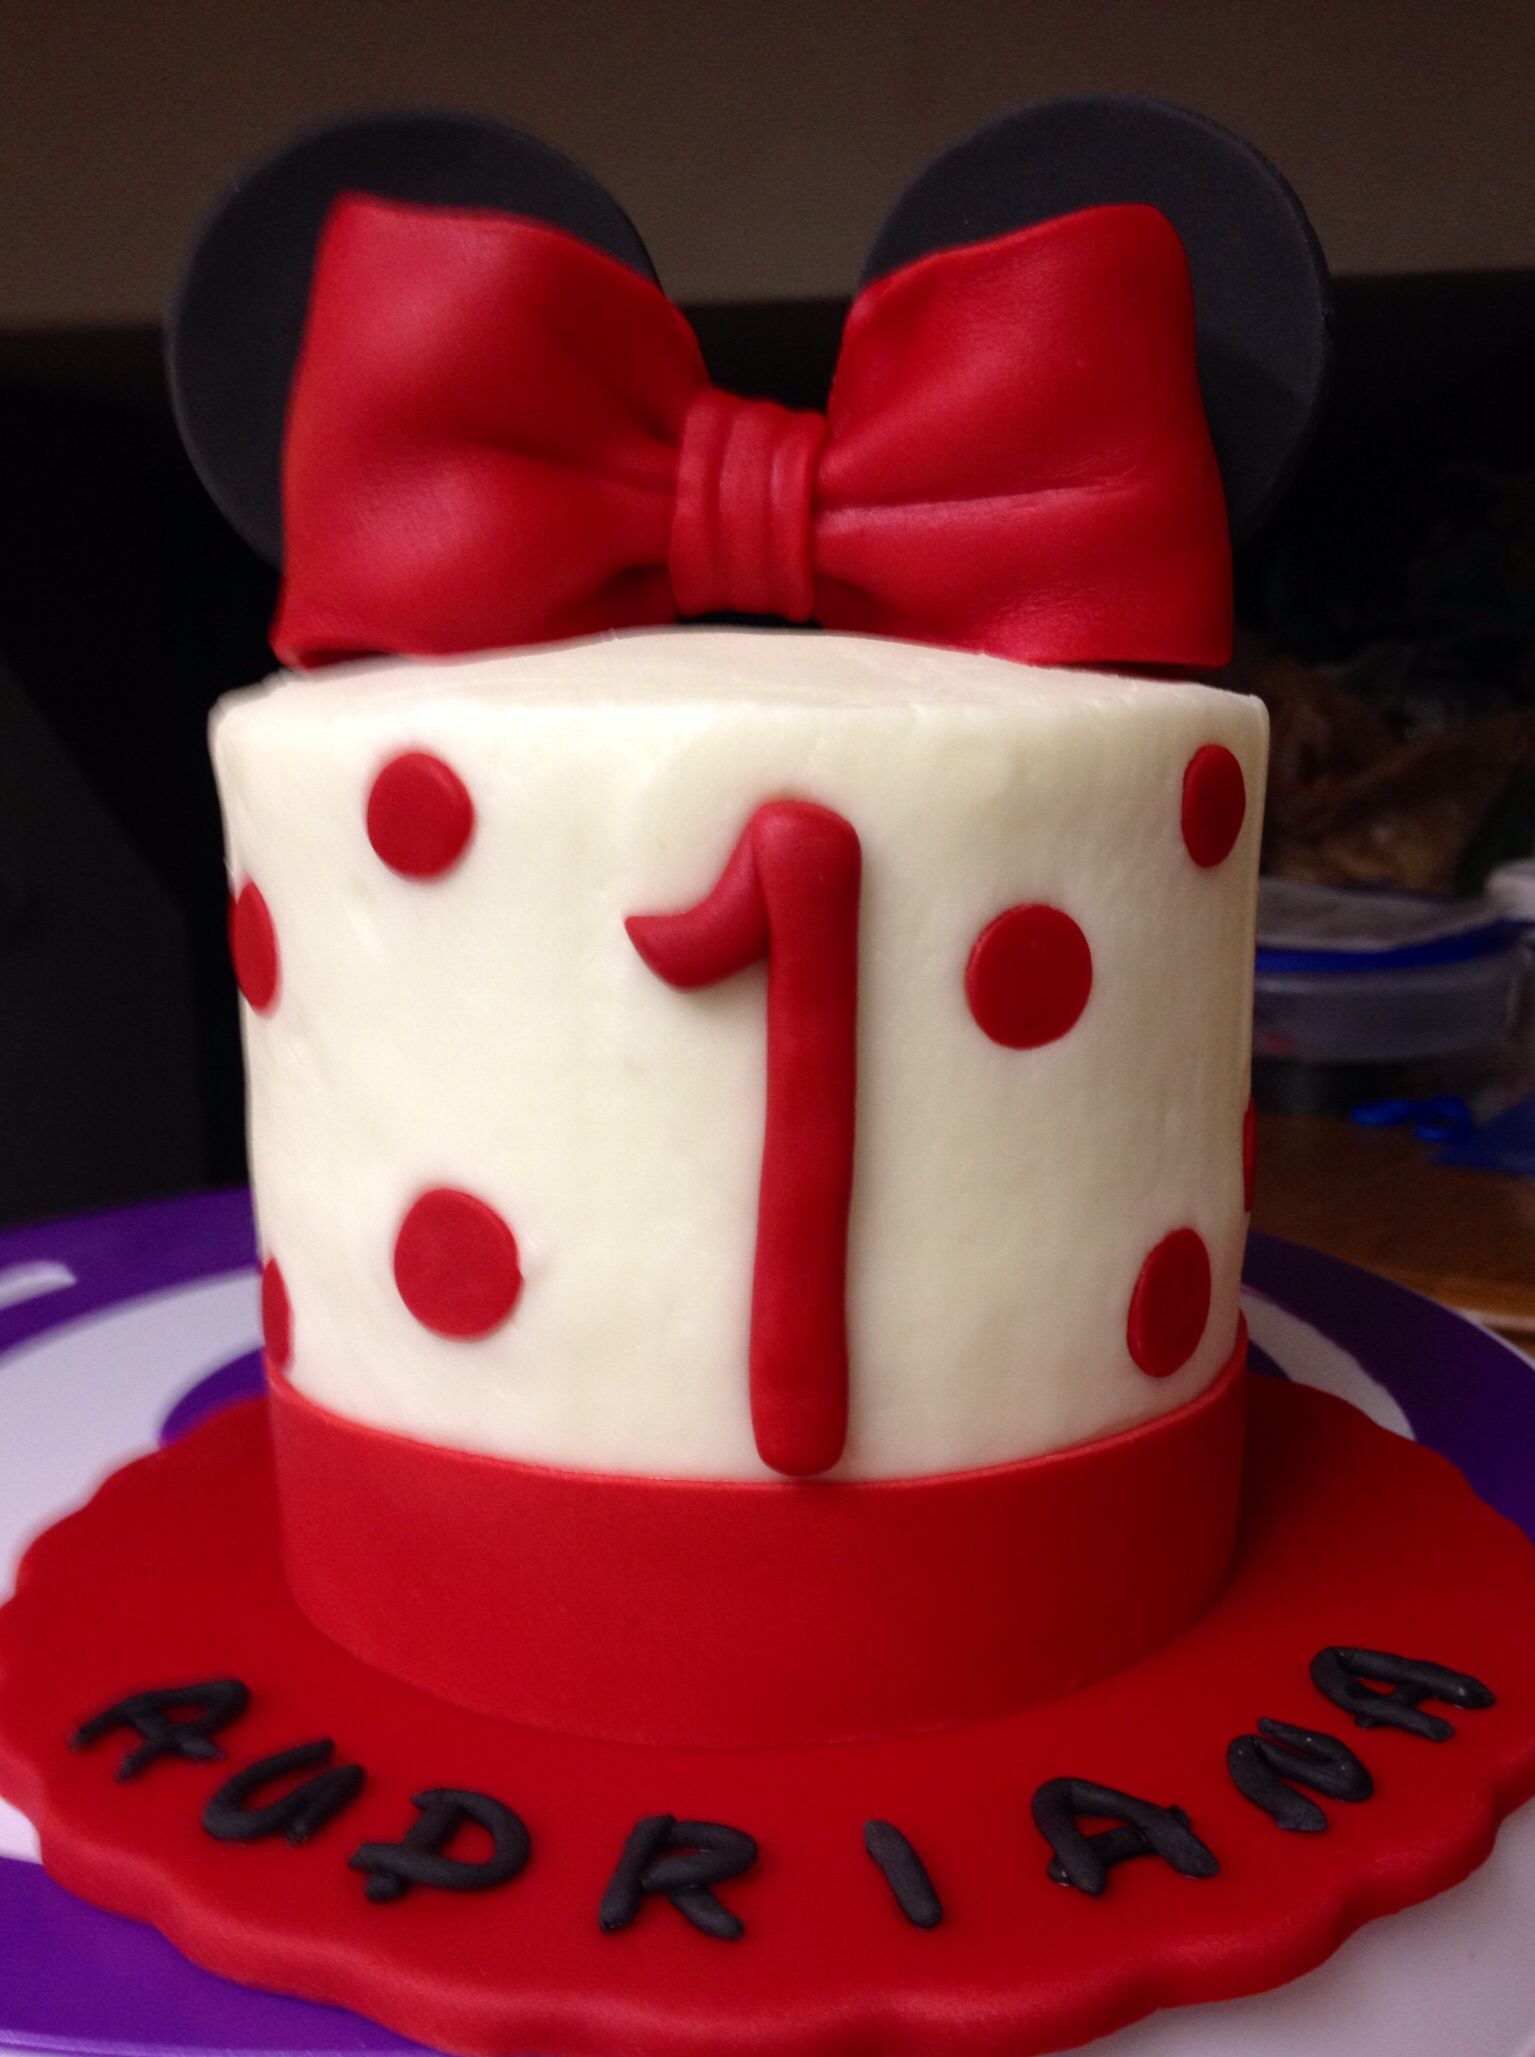 Pin By Lori Mcclaflin On My Own Cake Creations 1st Birthday Cakes Minnie Mouse Cake Cake